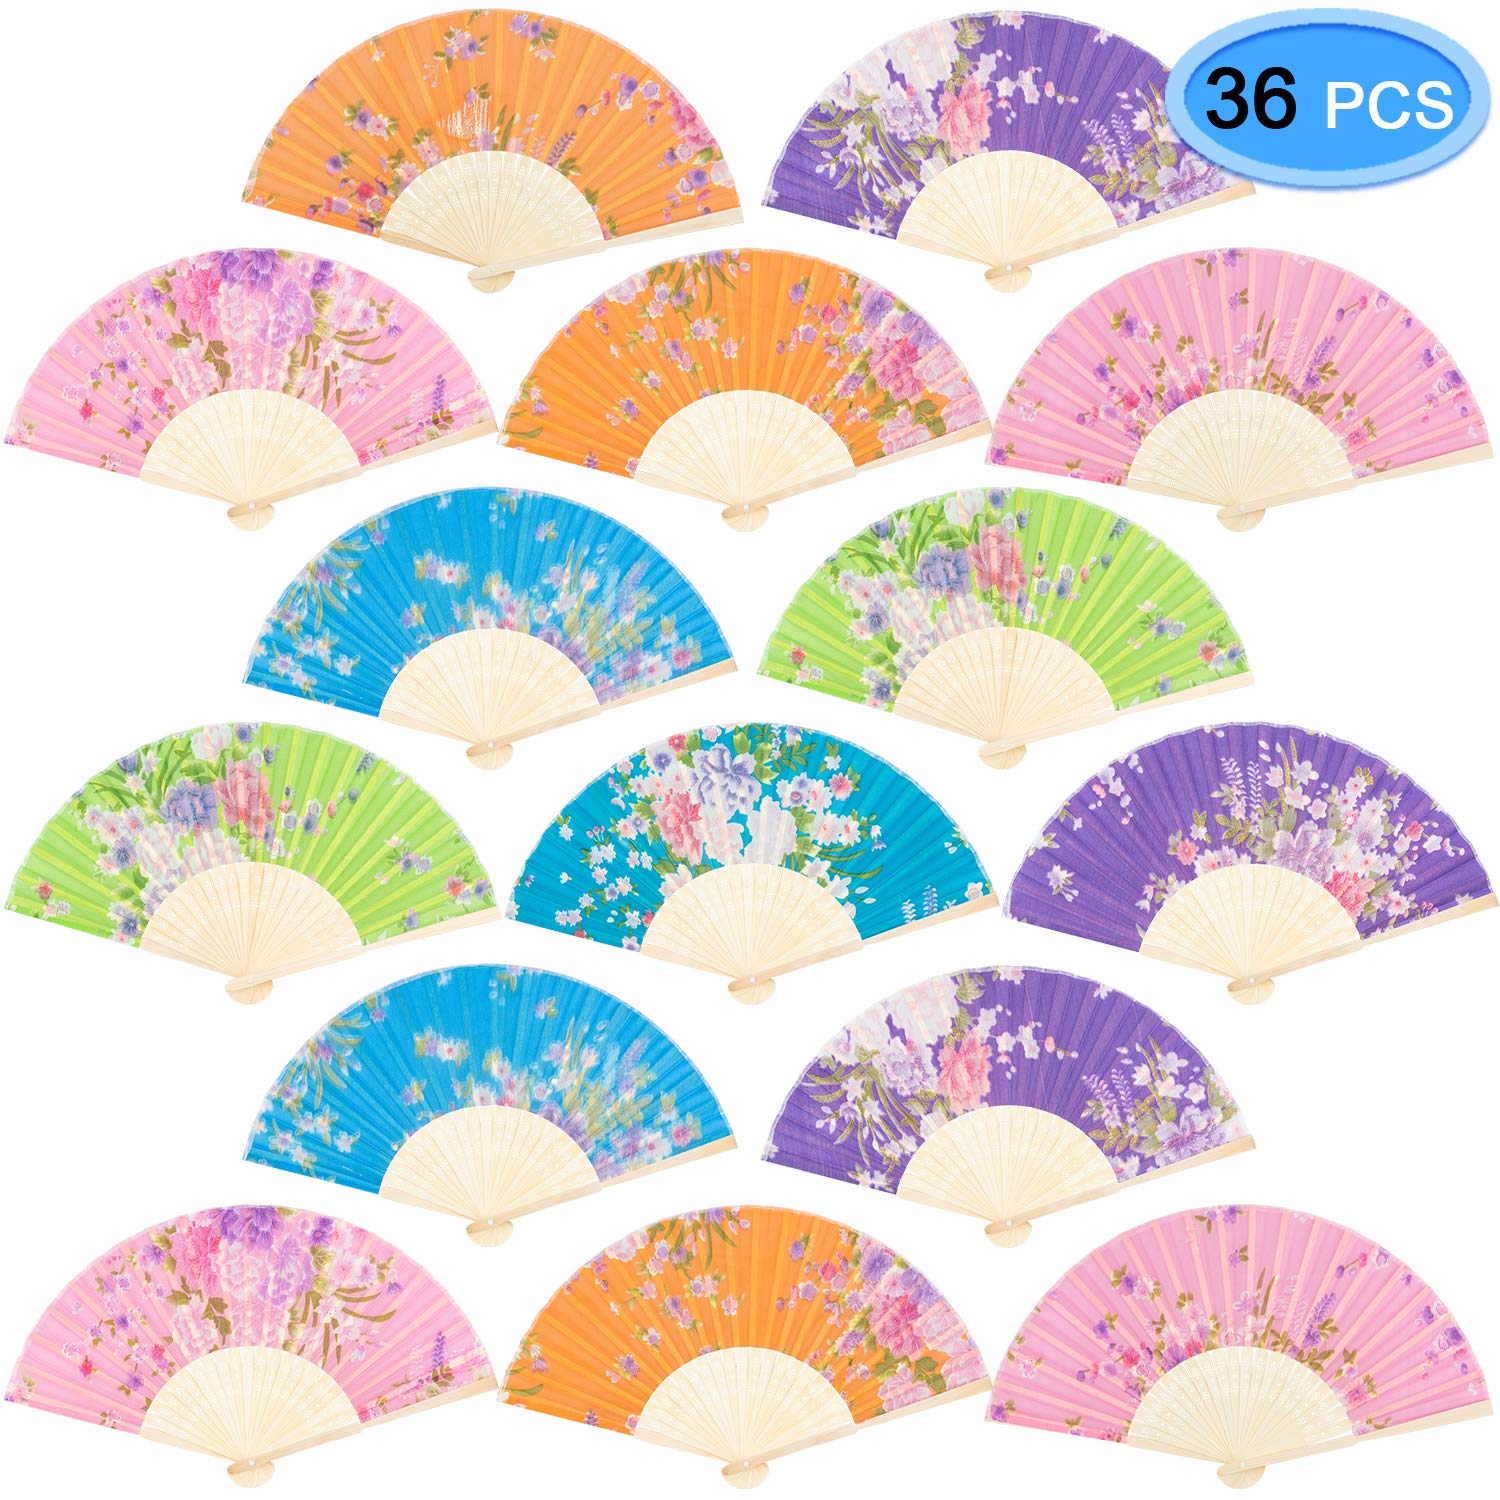 EAONE 36 Pcs Hand Folding Fan, Silk Floral Folding Fan, Vintage Handheld Fan, Chinese Style Fabric Folding Fan with Bamboo Rib for Wedding Dancing Party (Random Color) by EAONE